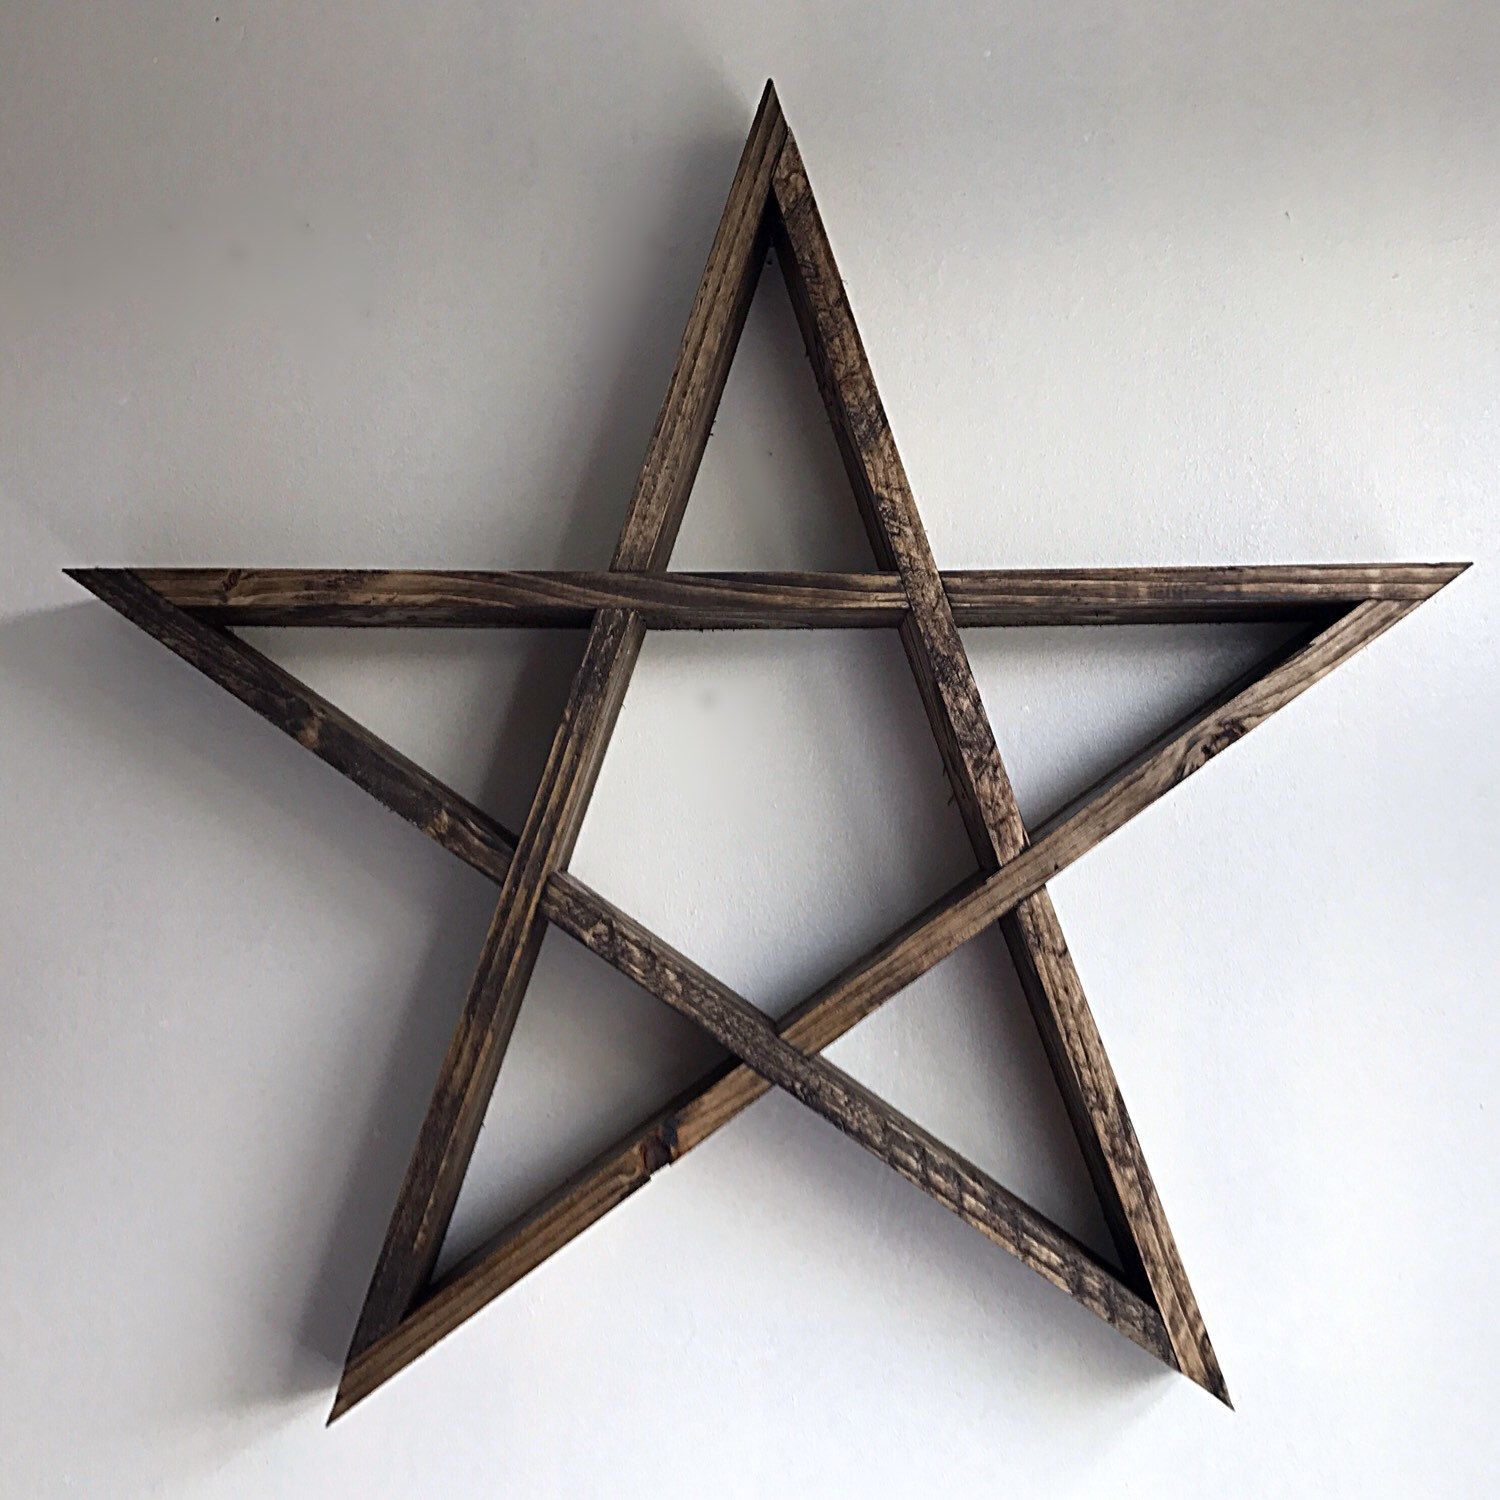 Introducing The New Pentagramstar Shelf Handmade With Interlocking Wood #Attentiontodetail